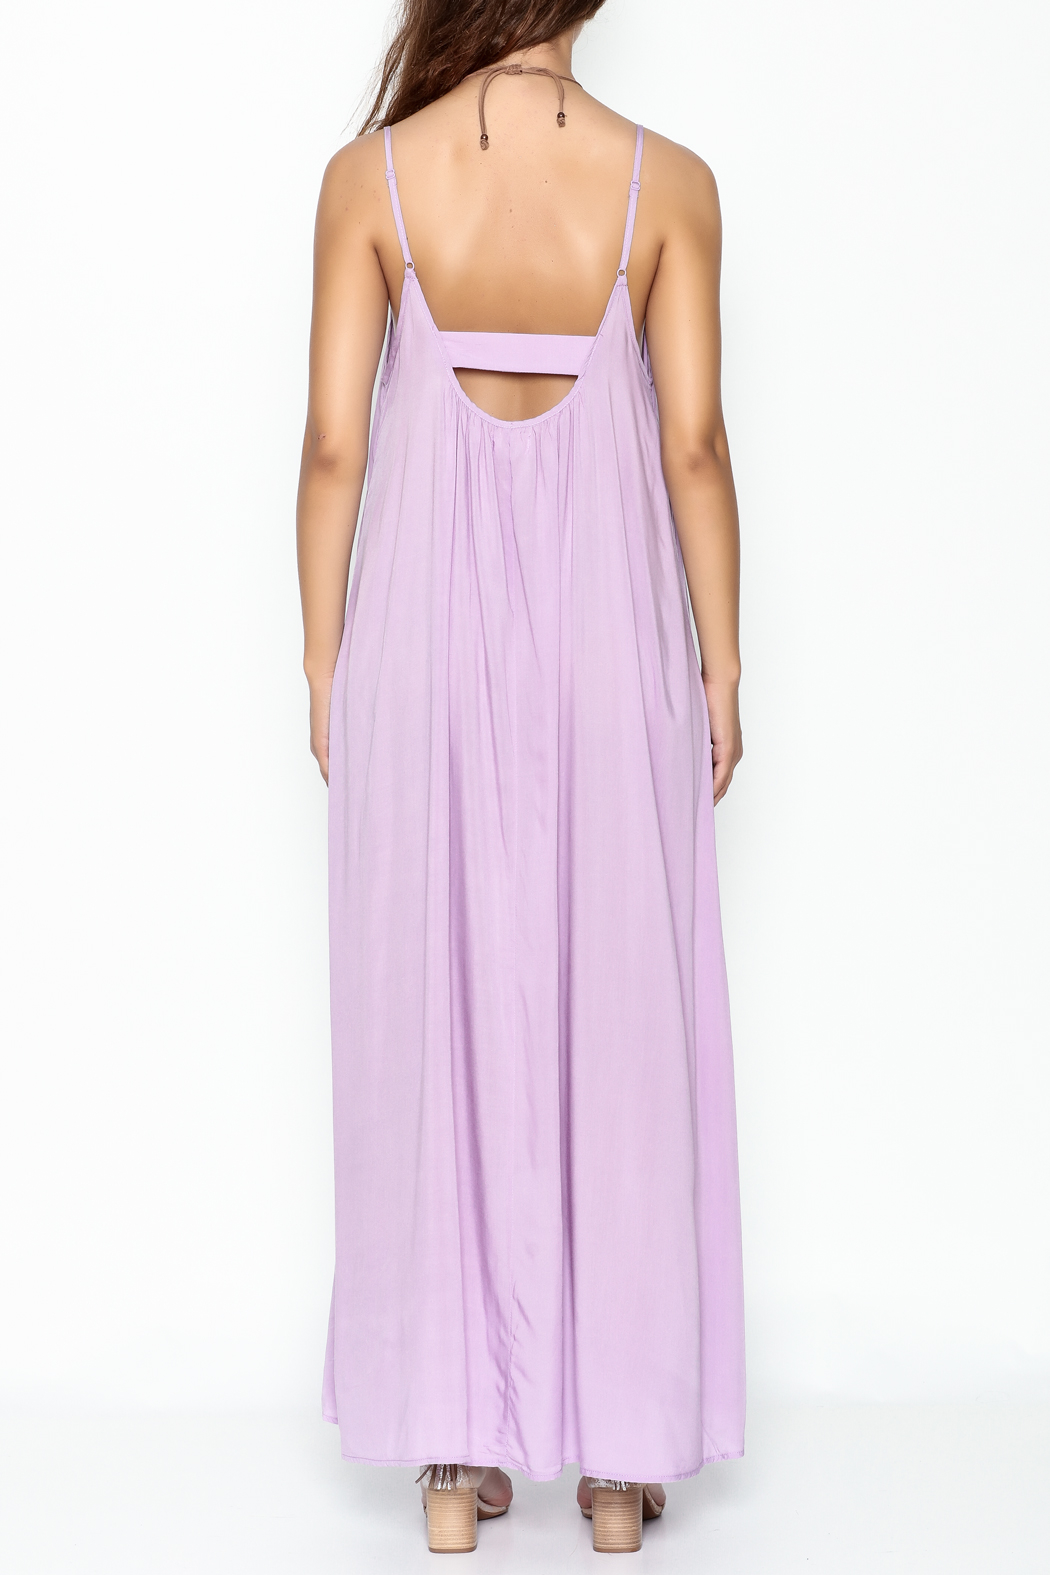 Mustard Seed Lavender Strappy Maxi - Back Cropped Image